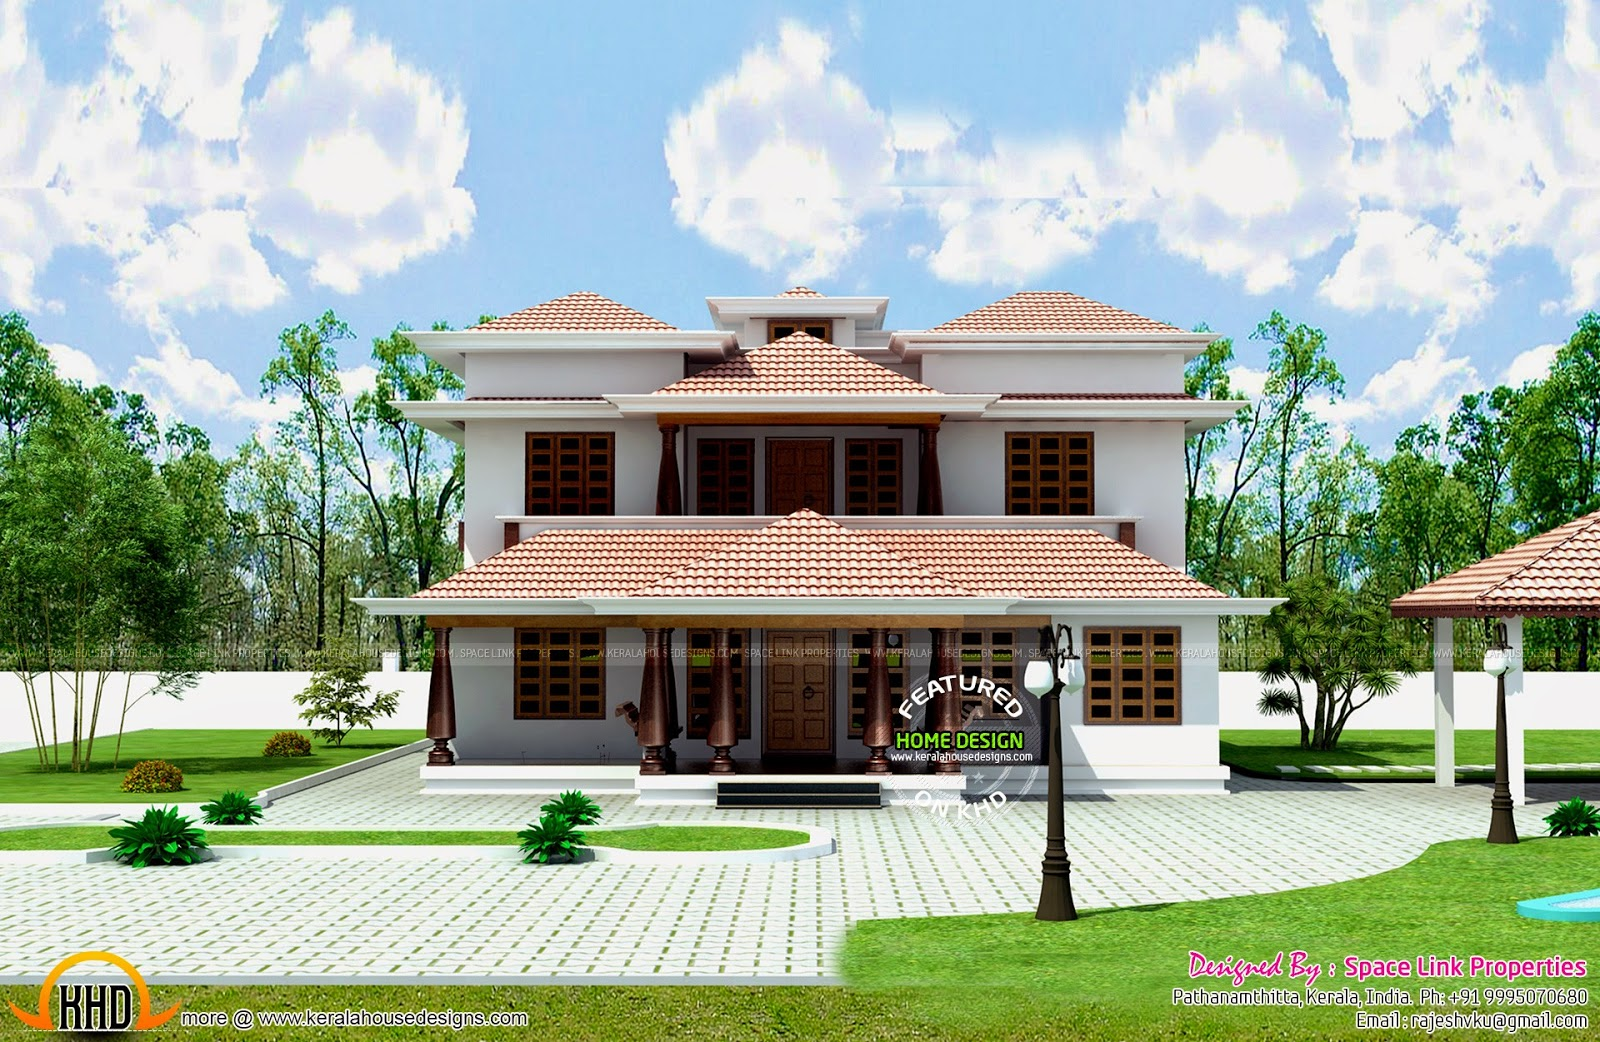 Typical kerala traditional house kerala home design and for Kerala style house plans with photos